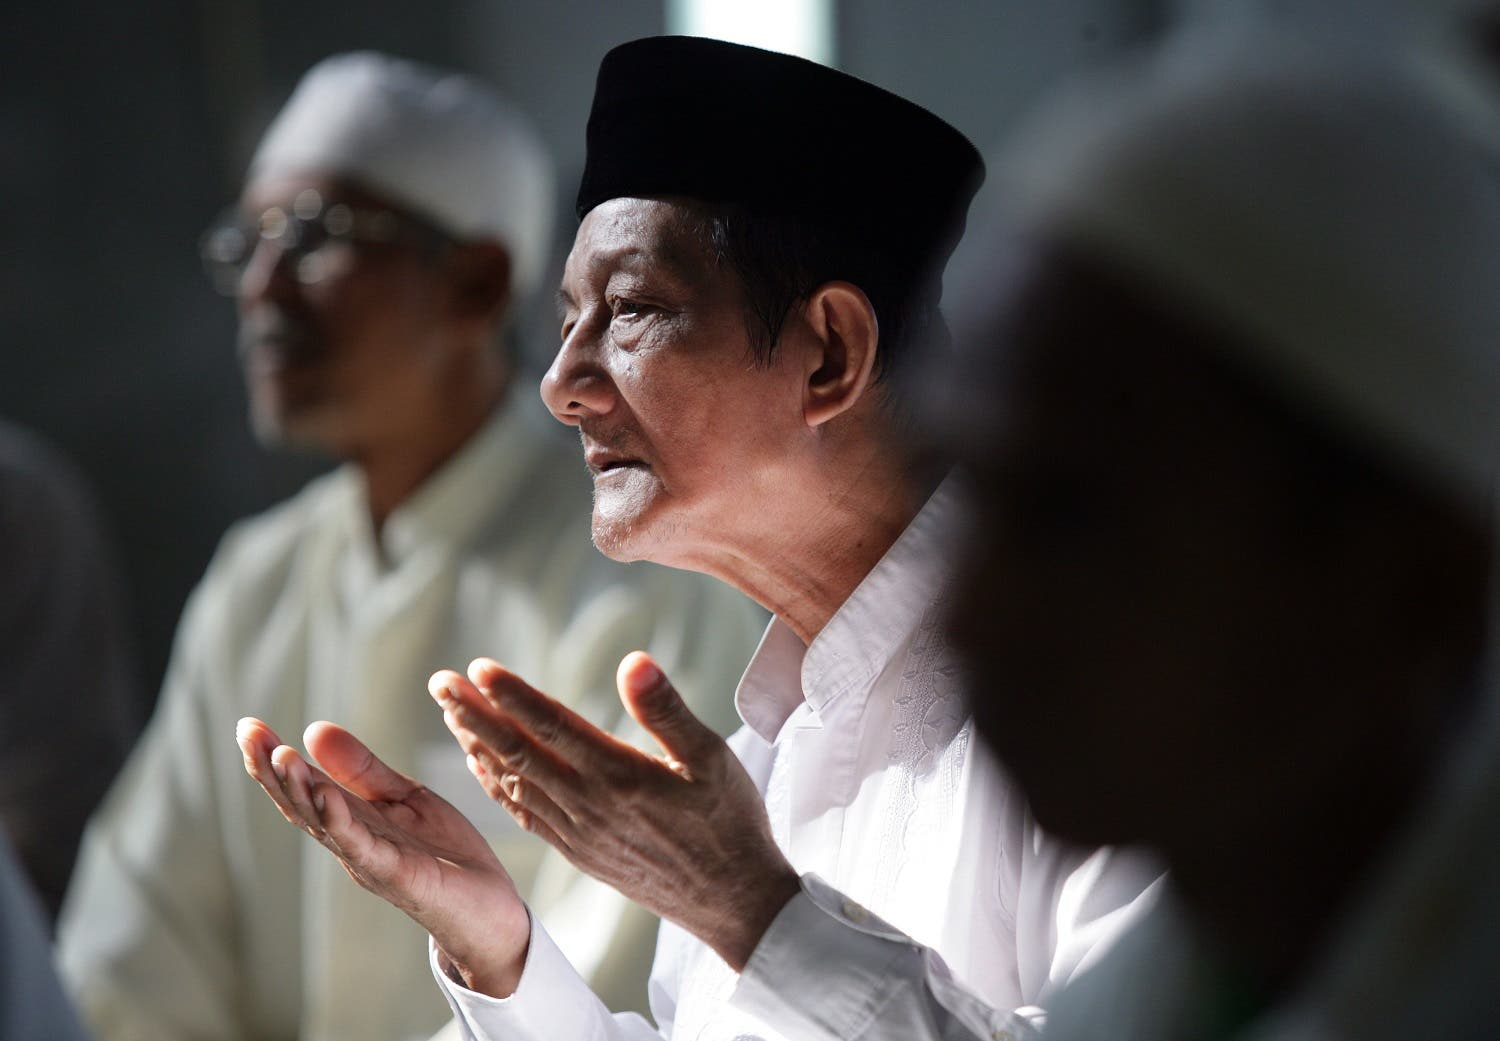 A group of Indonesian Muslims hold a mass prayer at a mosque in Jakarta on July 12, 2009 in support of Muslim Uighurs, following the recent deadly rioting which left more than 180 people dead in China's Xinjiang region. (AFP)